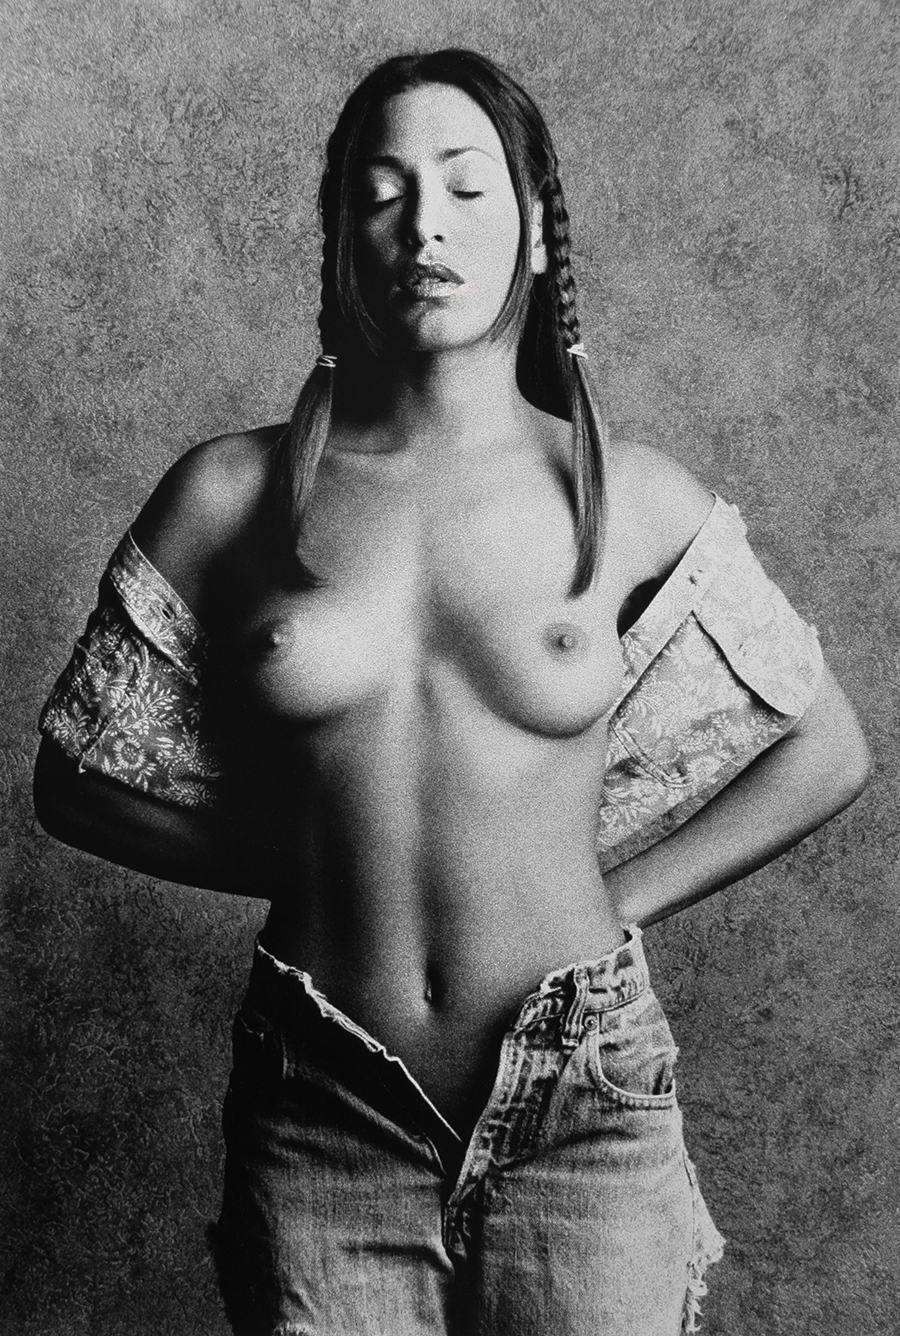 Tony_Ward_photography_early_work_casting_calls_topless_jeans_pigtails_young_beauty_nudes_erotica